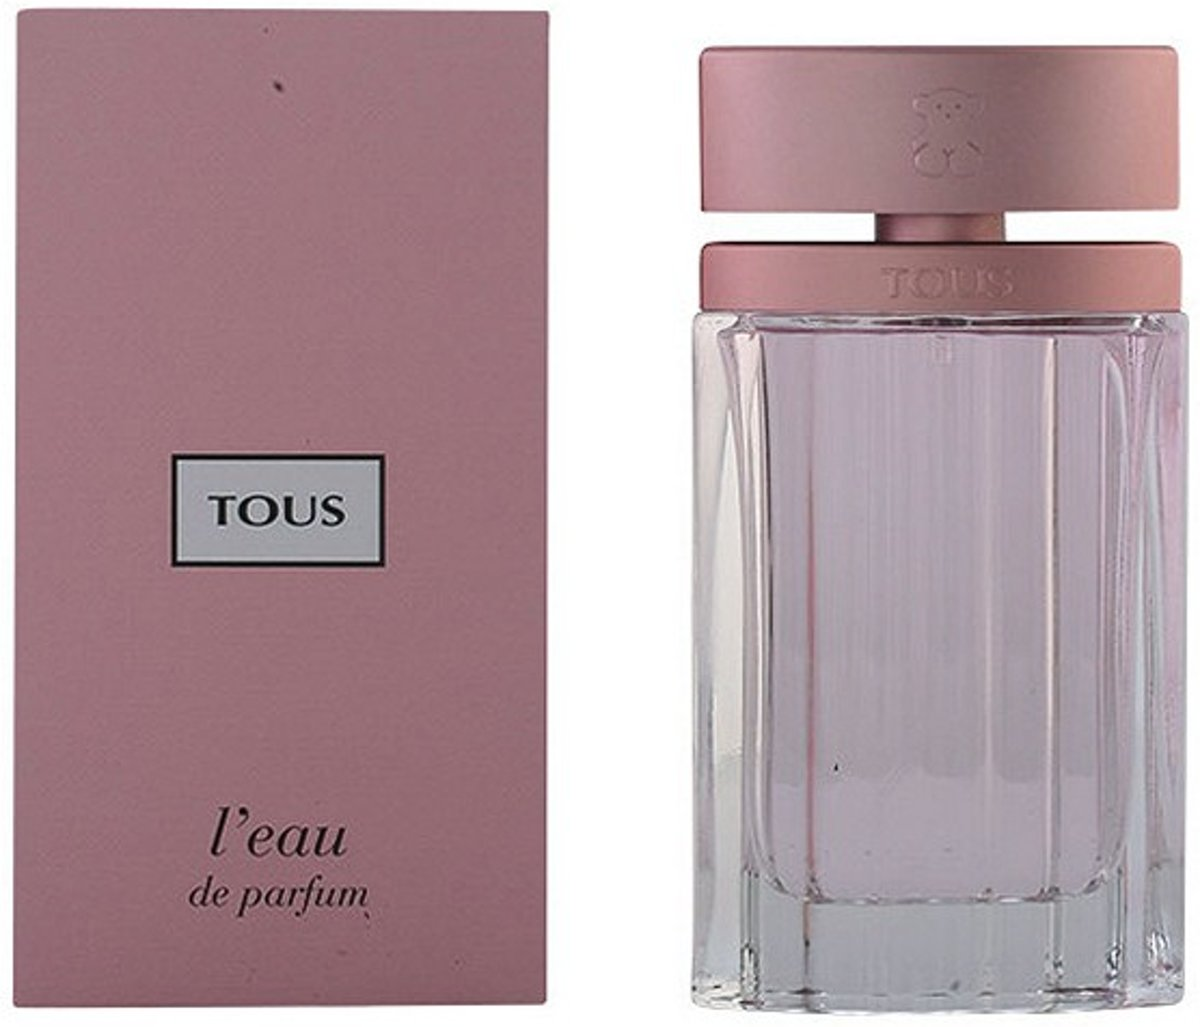 Tous Leau By Tous Eau De Parfum Spray 90 ml - Fragrances For Women